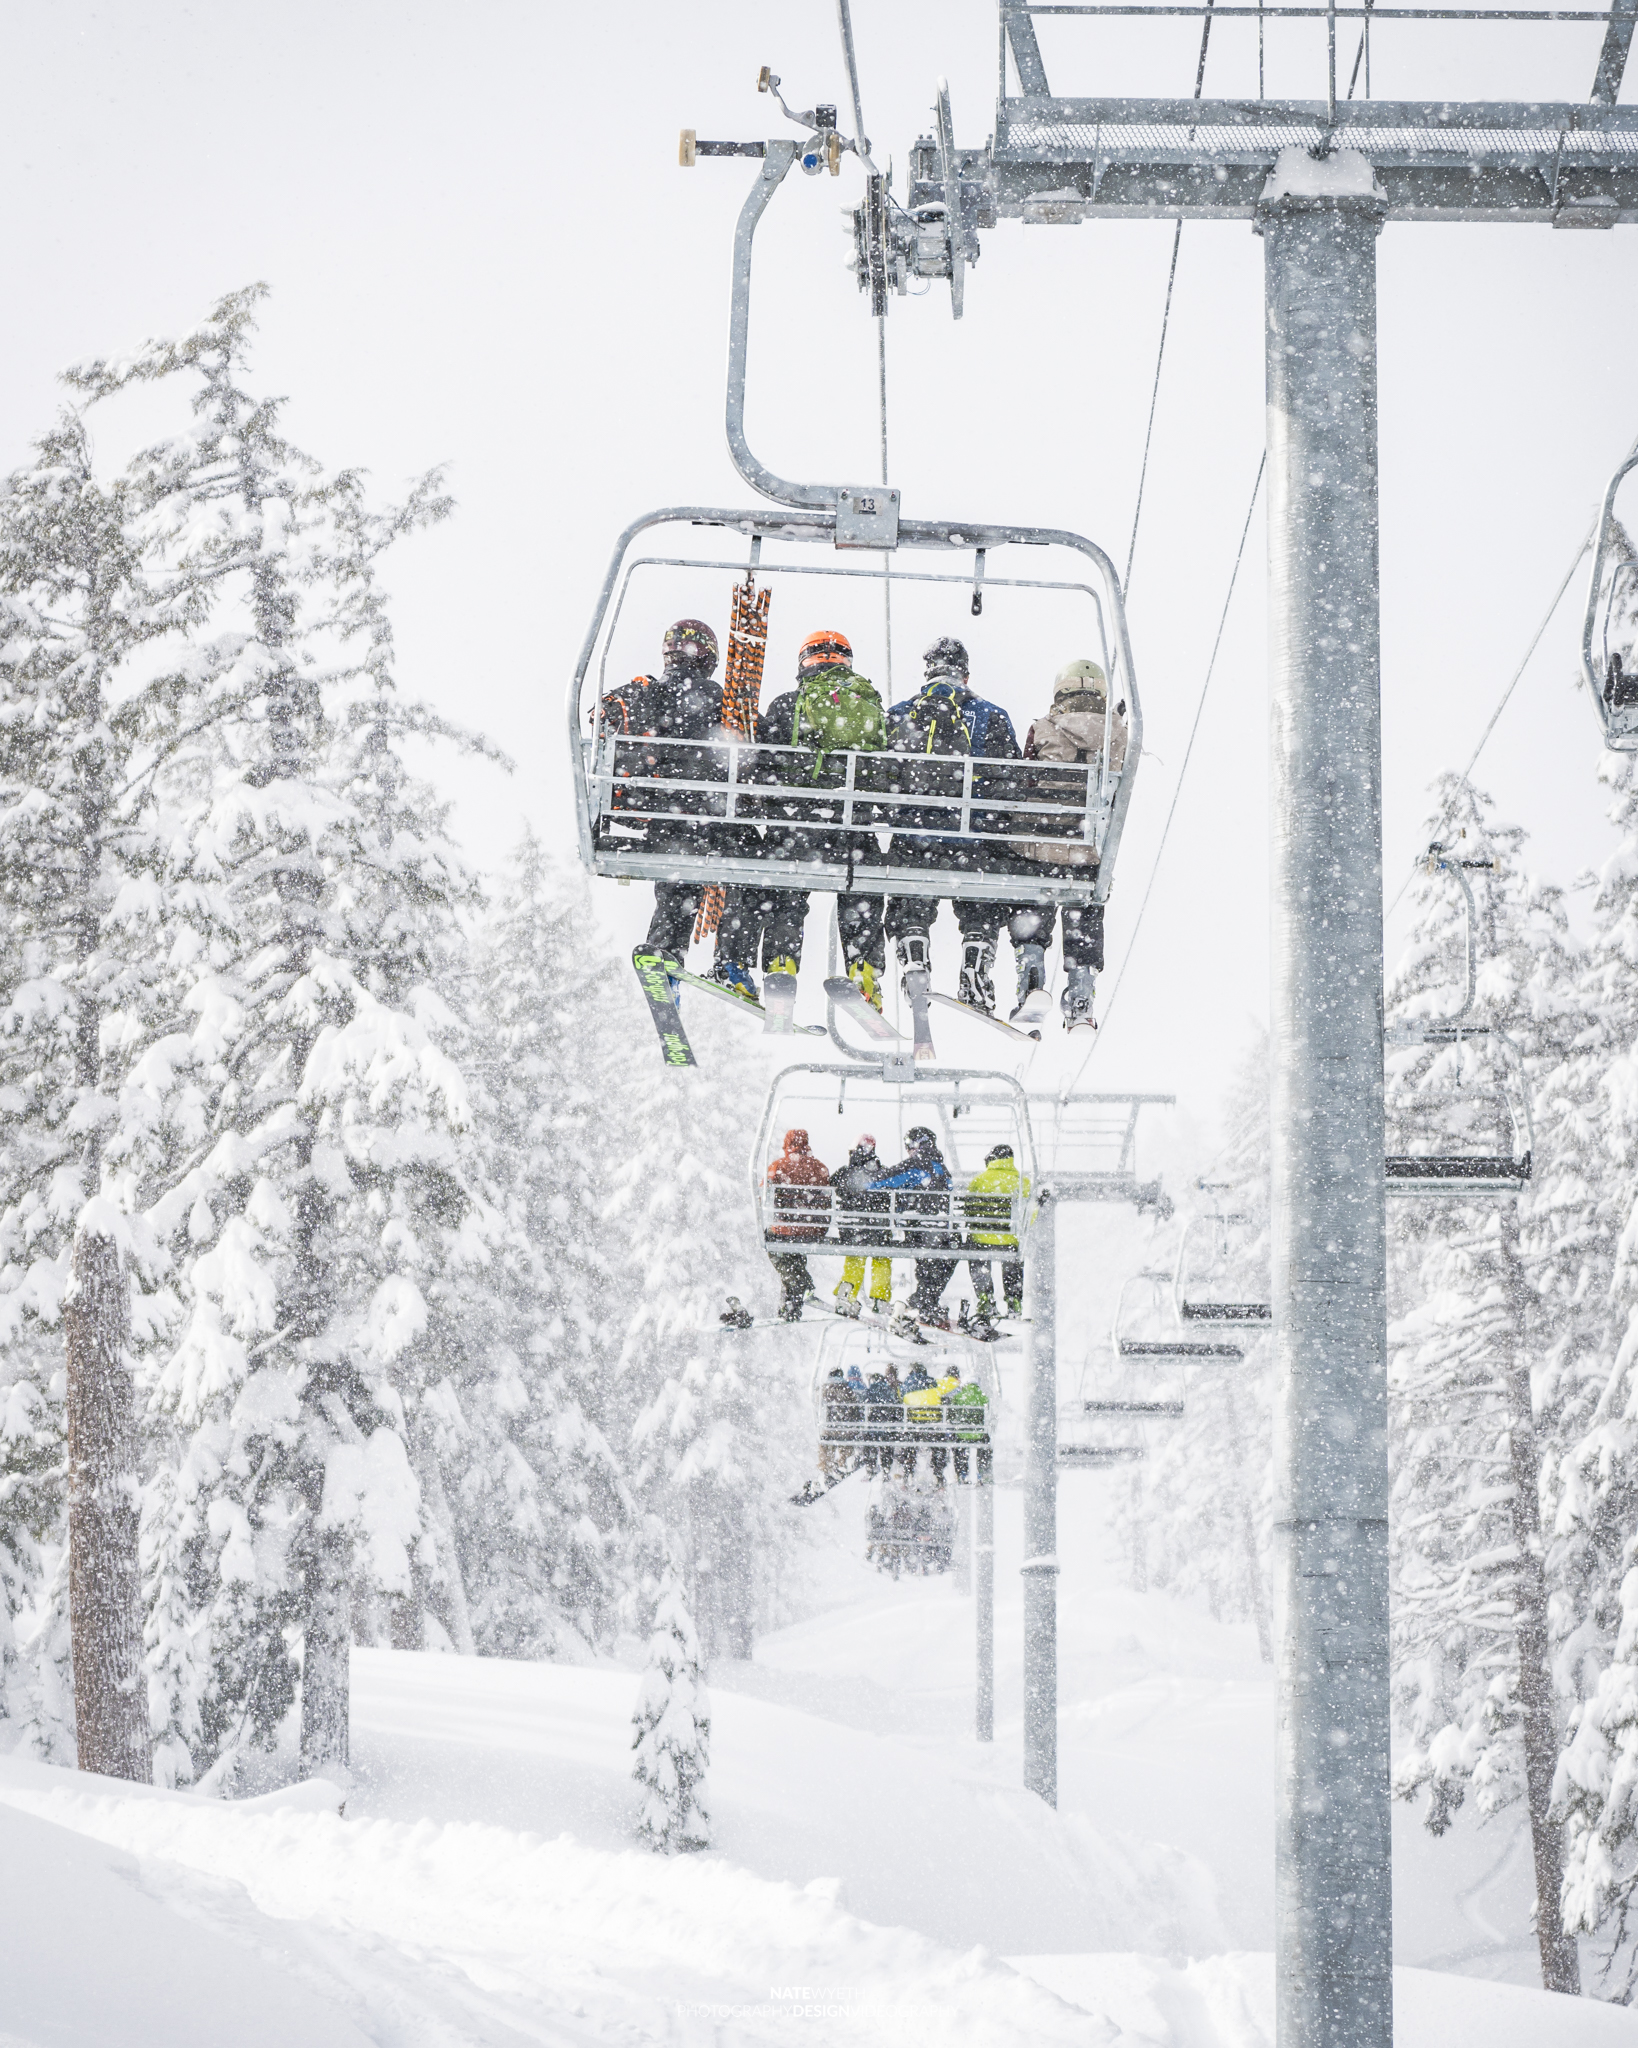 Cloudchaser Lift at Mt Bachelor